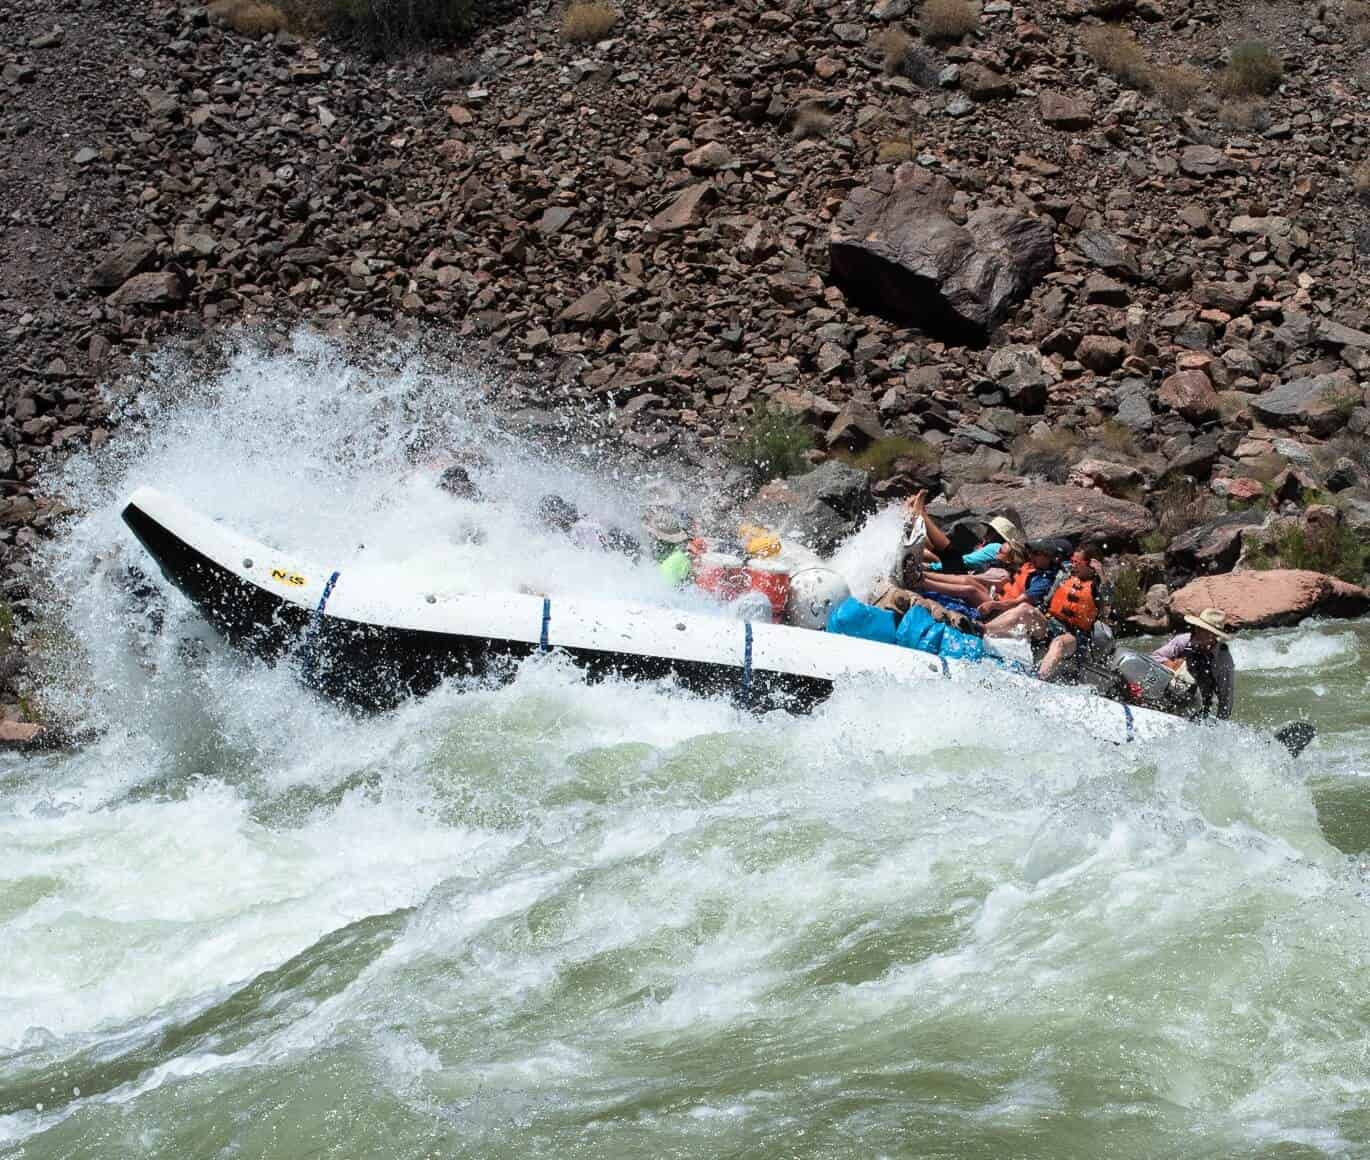 Motor raft going through a rapid while Grand Canyon Rafting